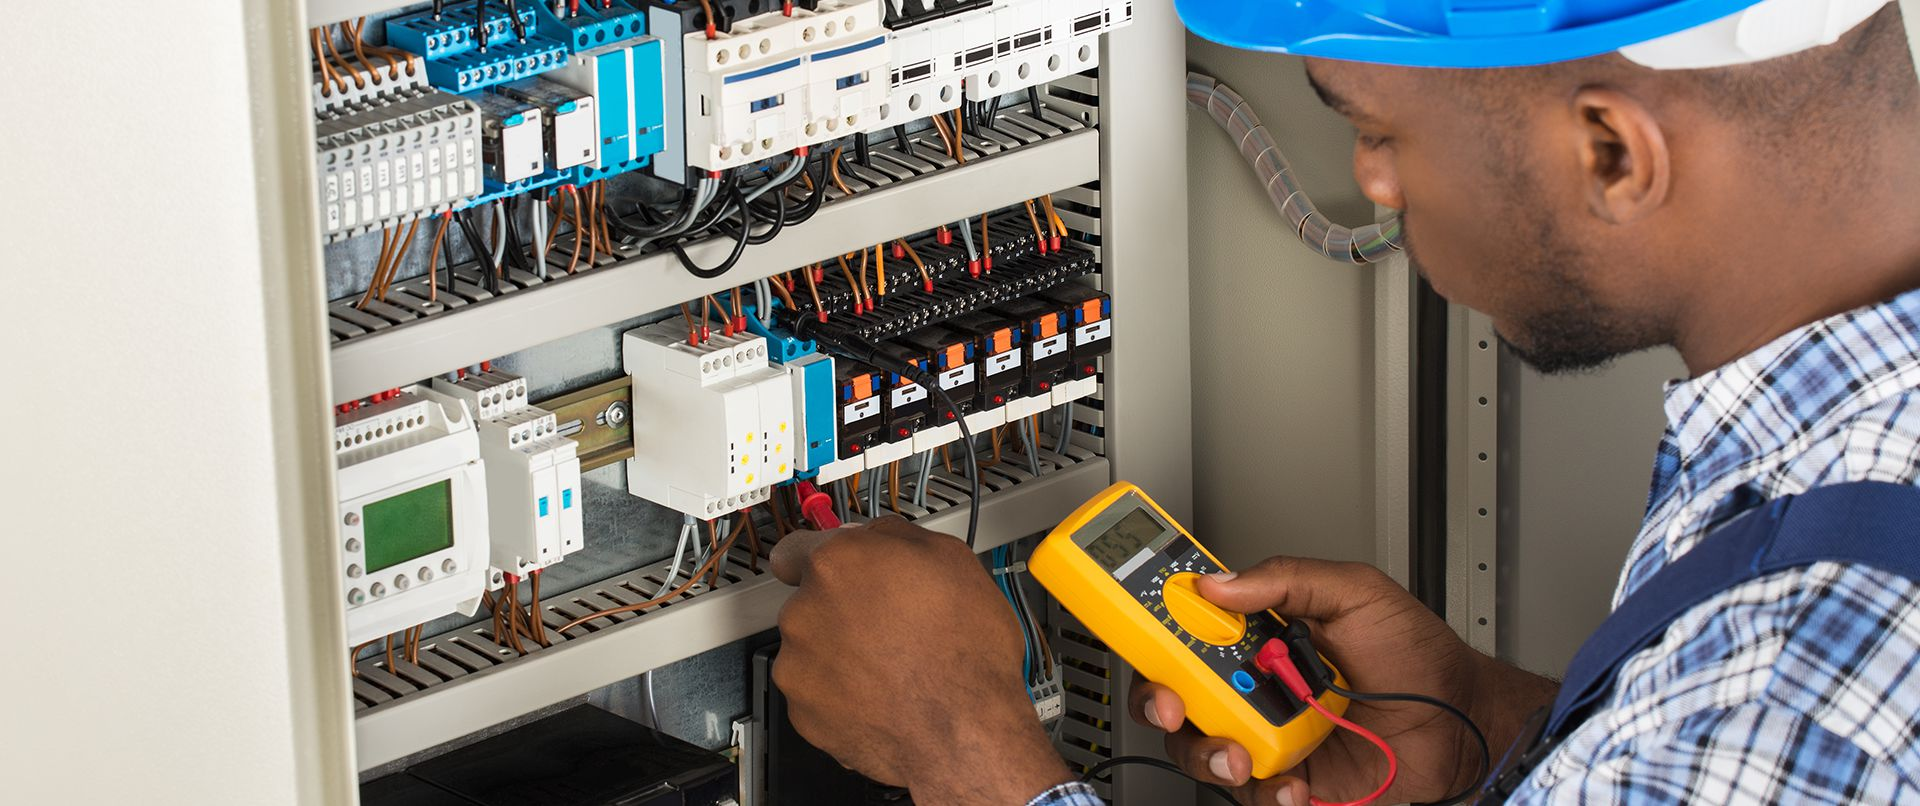 Electrician in Harrow, The Best Electrician in Harrow to Handle Your Electric Problems